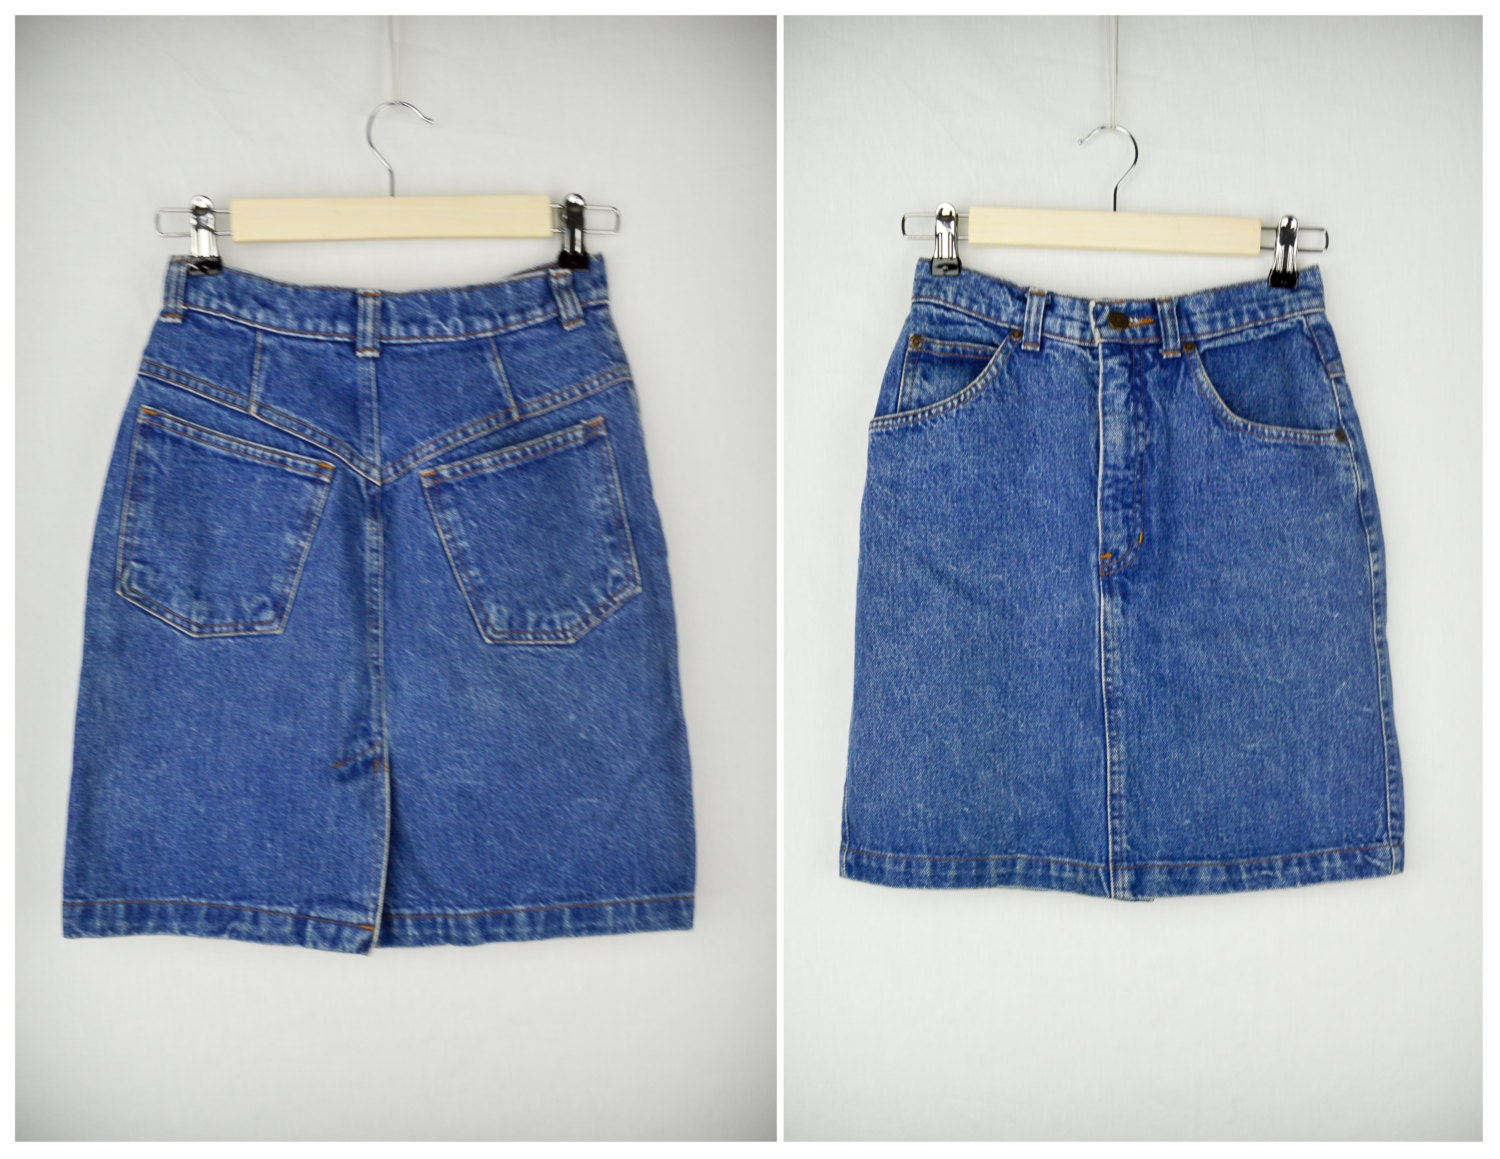 90s high waisted jean skirt vintage clothing 90s clothing